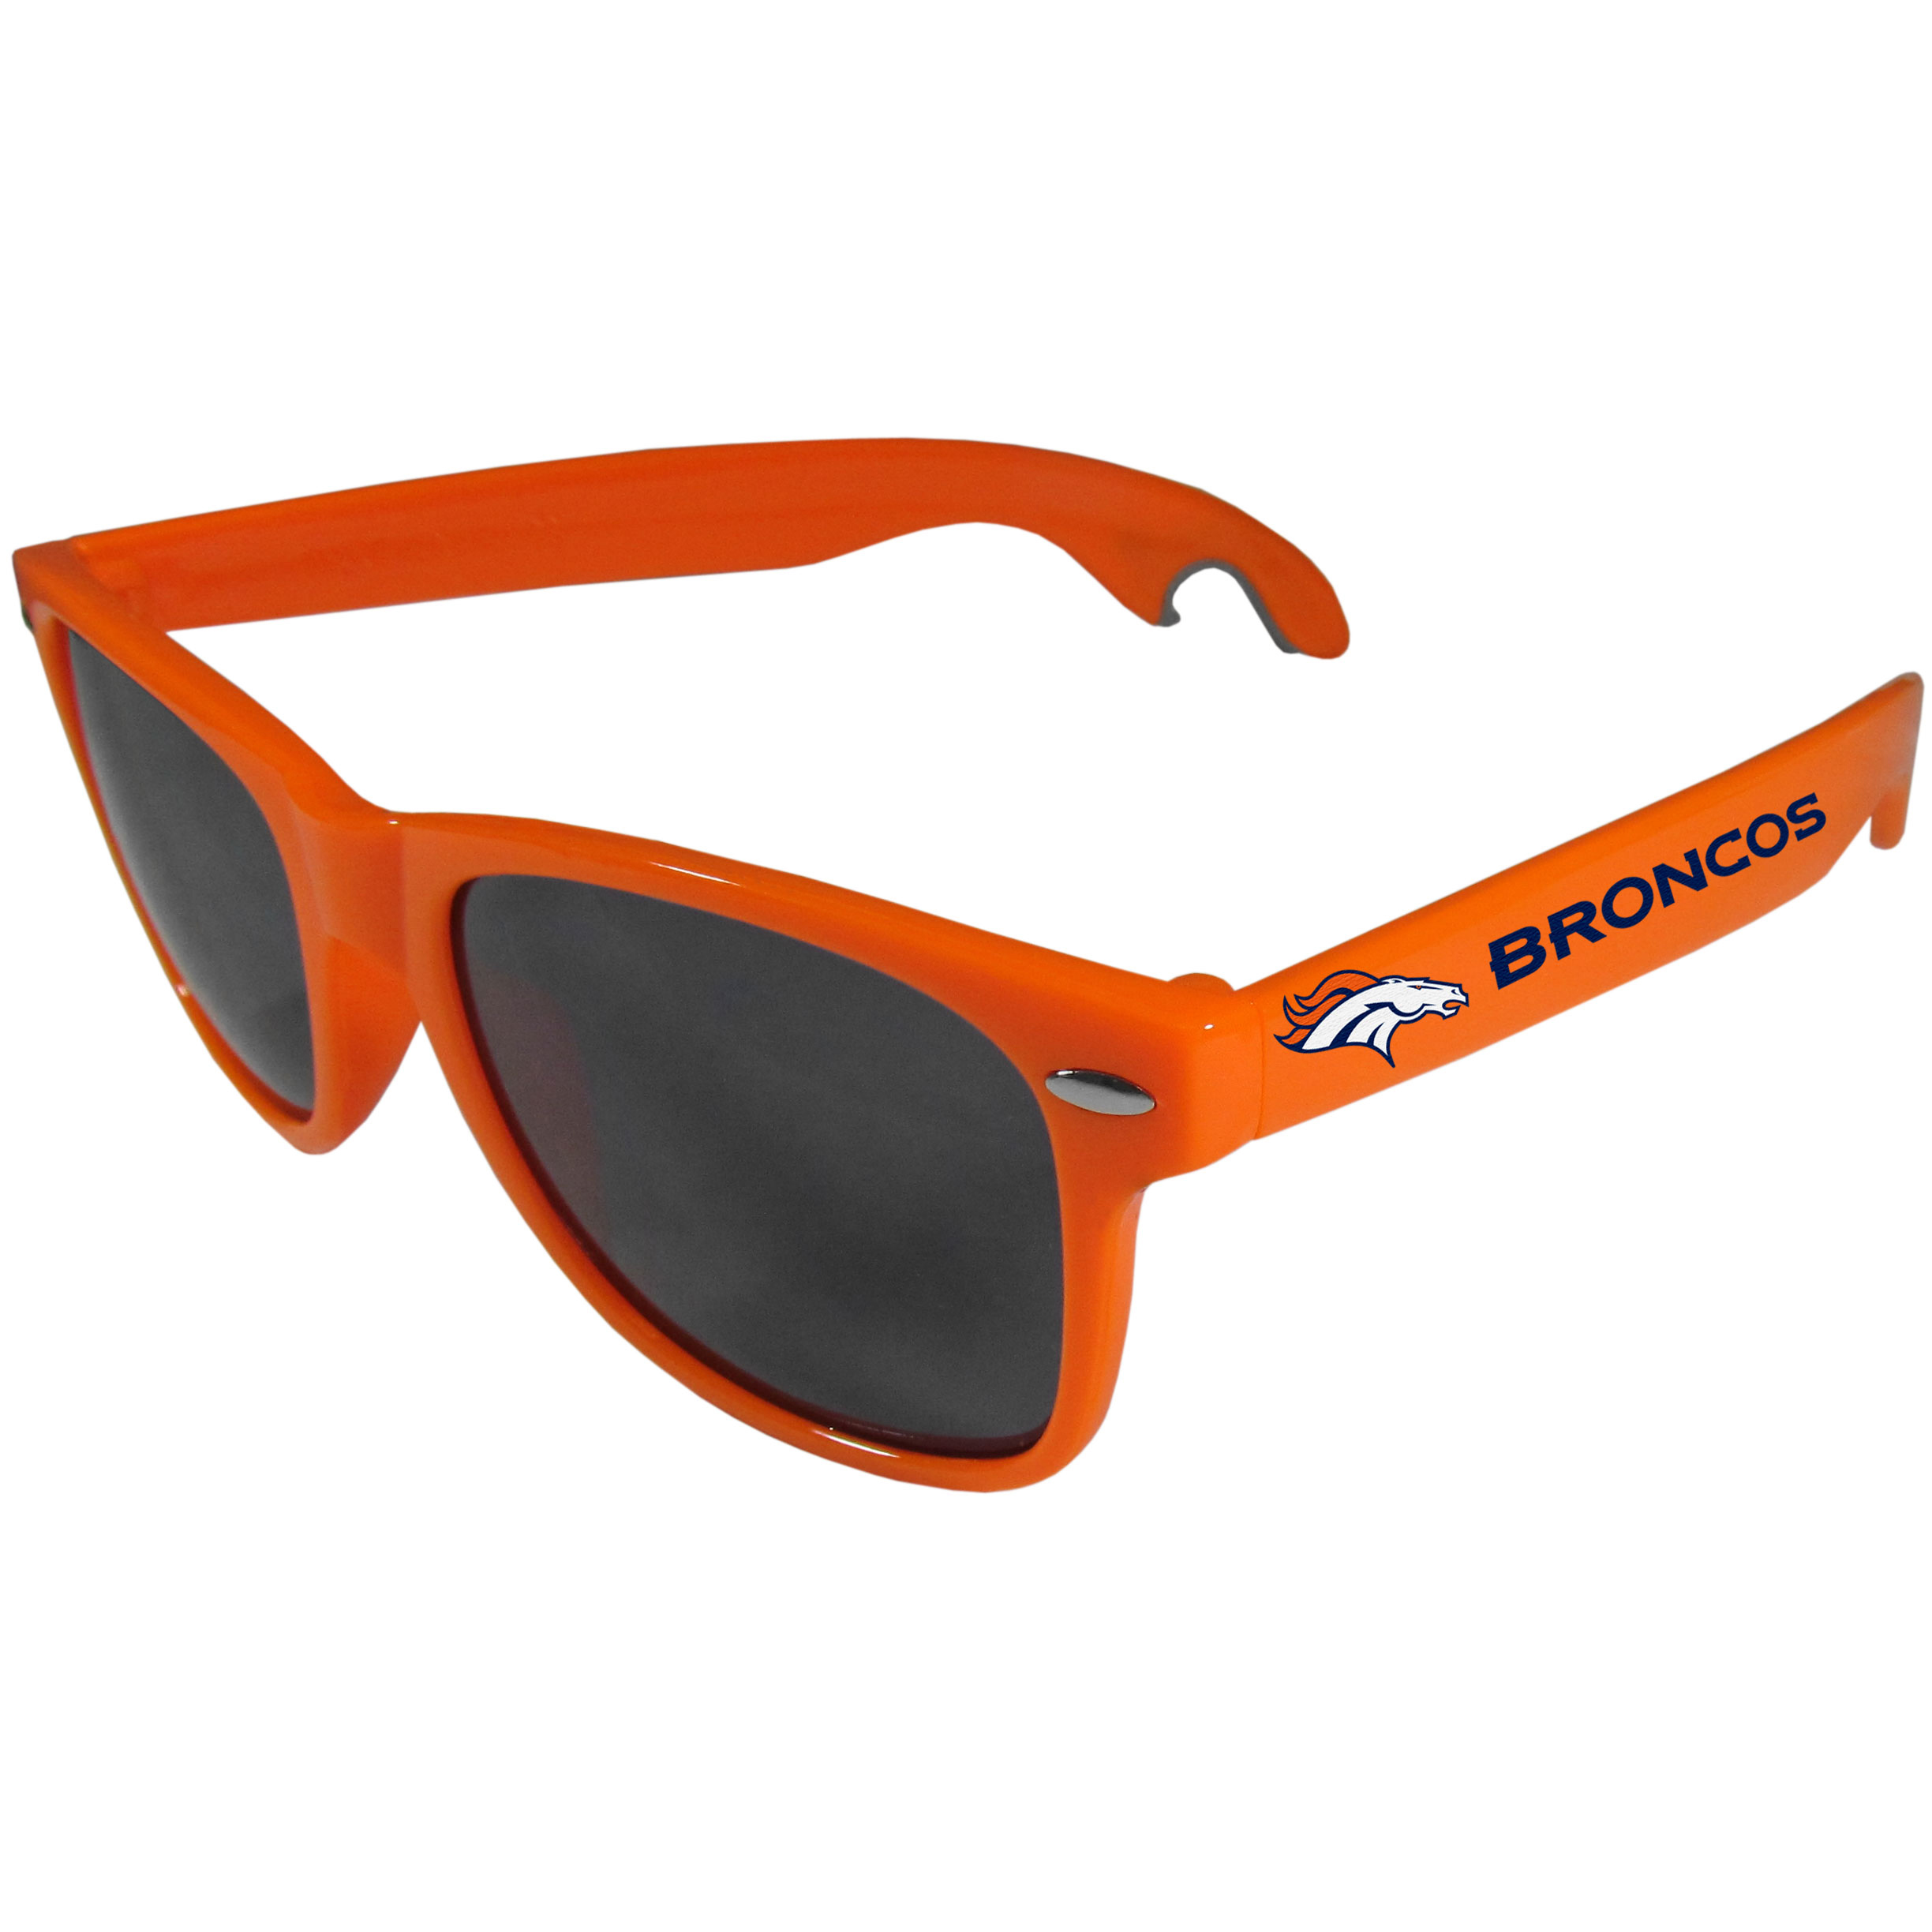 Denver Broncos Beachfarer Bottle Opener Sunglasses, Orange - Seriously, these sunglasses open bottles! Keep the party going with these amazing Denver Broncos bottle opener sunglasses. The stylish retro frames feature team designs on the arms and functional bottle openers on the end of the arms. Whether you are at the beach or having a backyard BBQ on game day, these shades will keep your eyes protected with 100% UVA/UVB protection and keep you hydrated with the handy bottle opener arms.